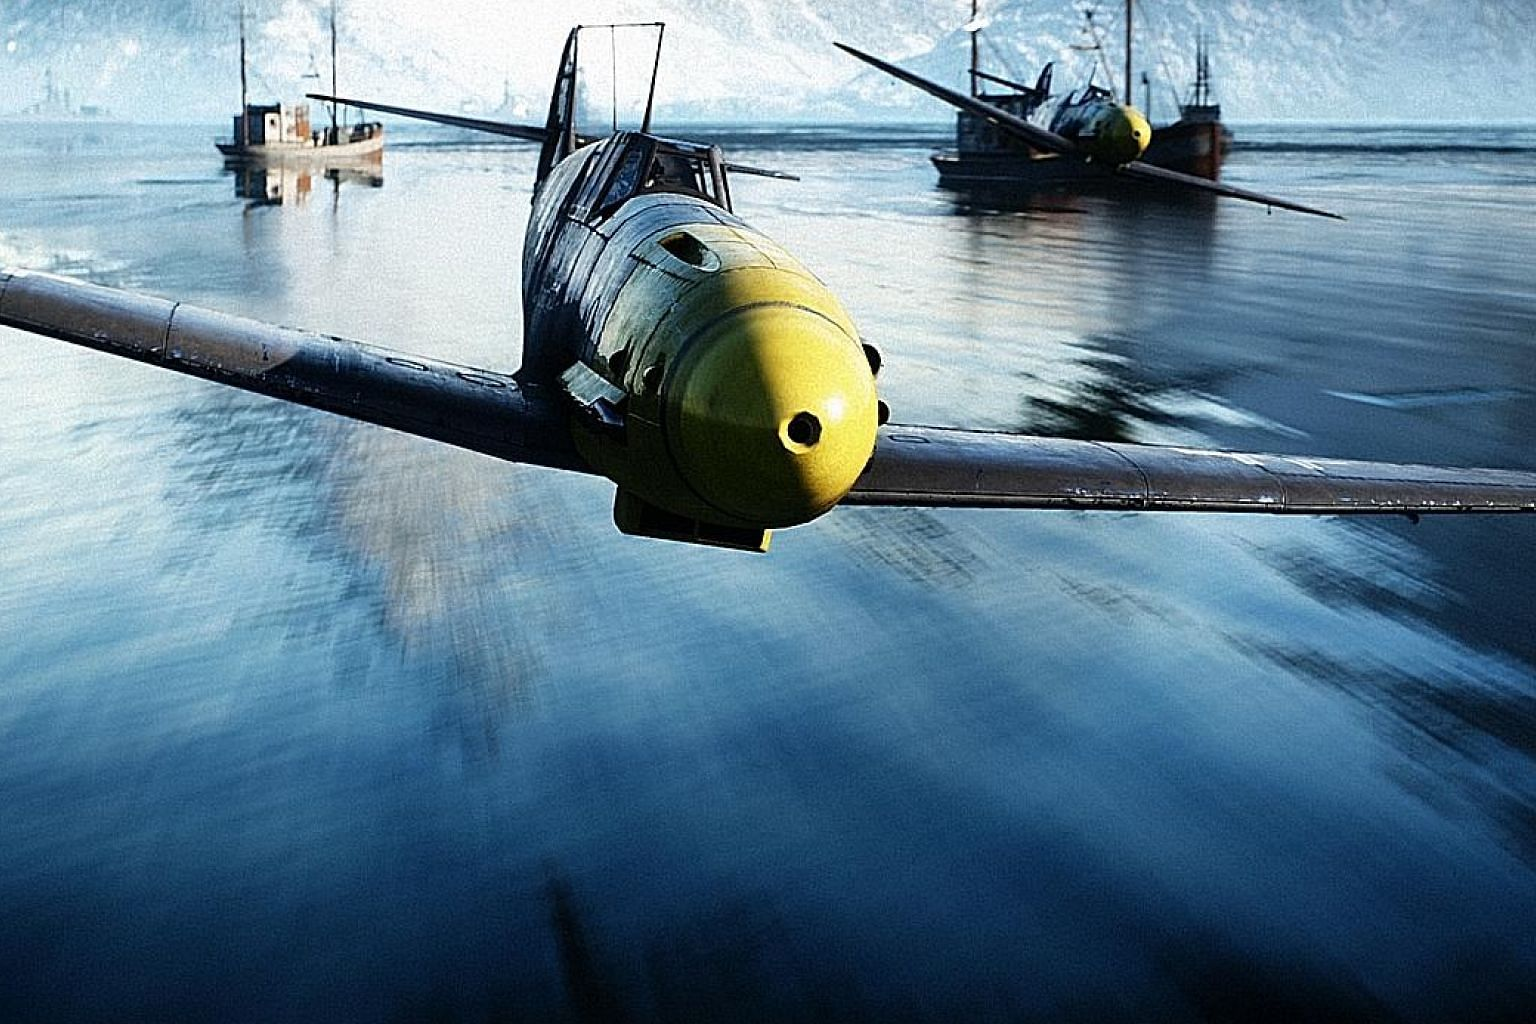 Action-packed shooting game Battlefield V uses ray tracing to create real-time reflections.